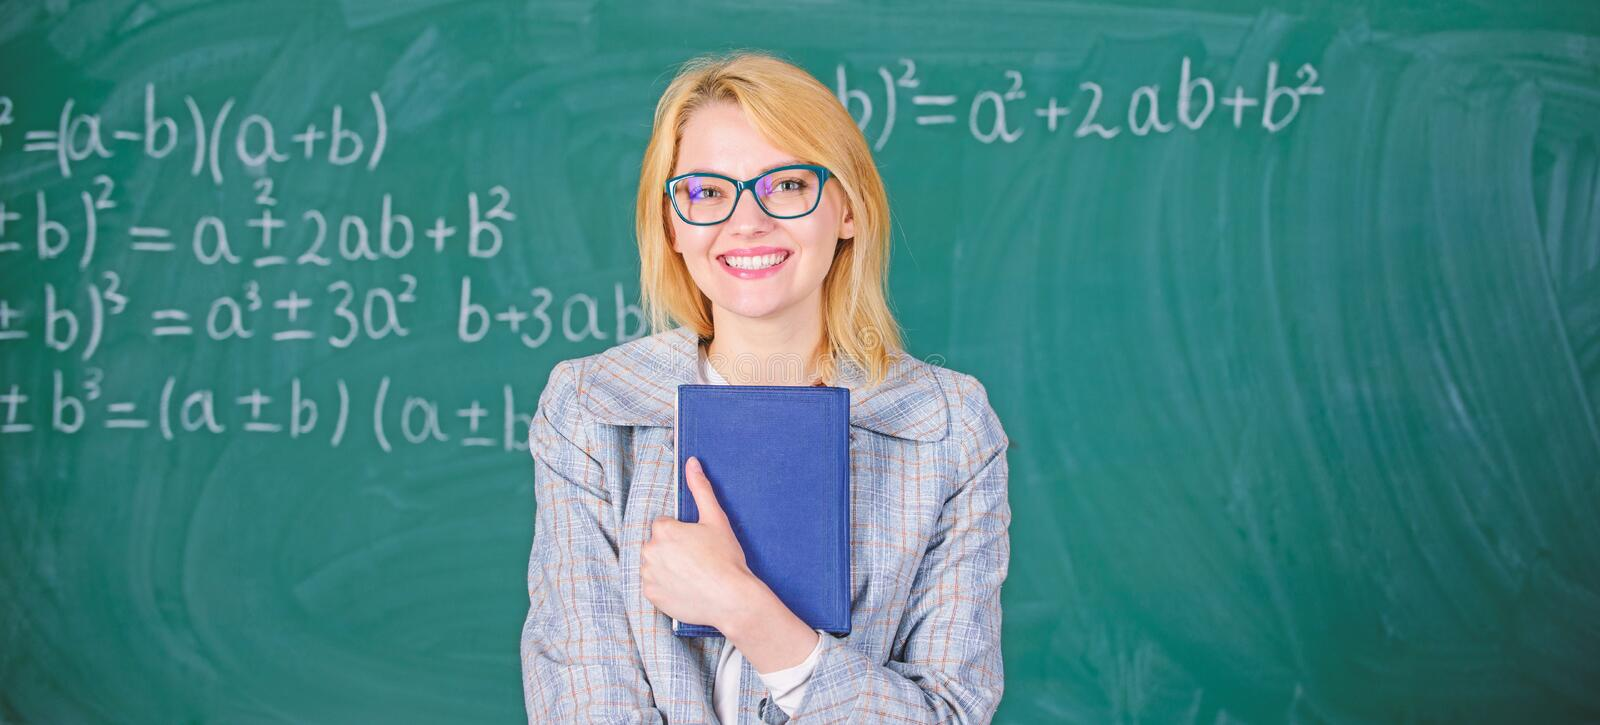 Woman teacher with book in front of chalkboard think about work. Cognition process in learning. Cognition process of stock photography